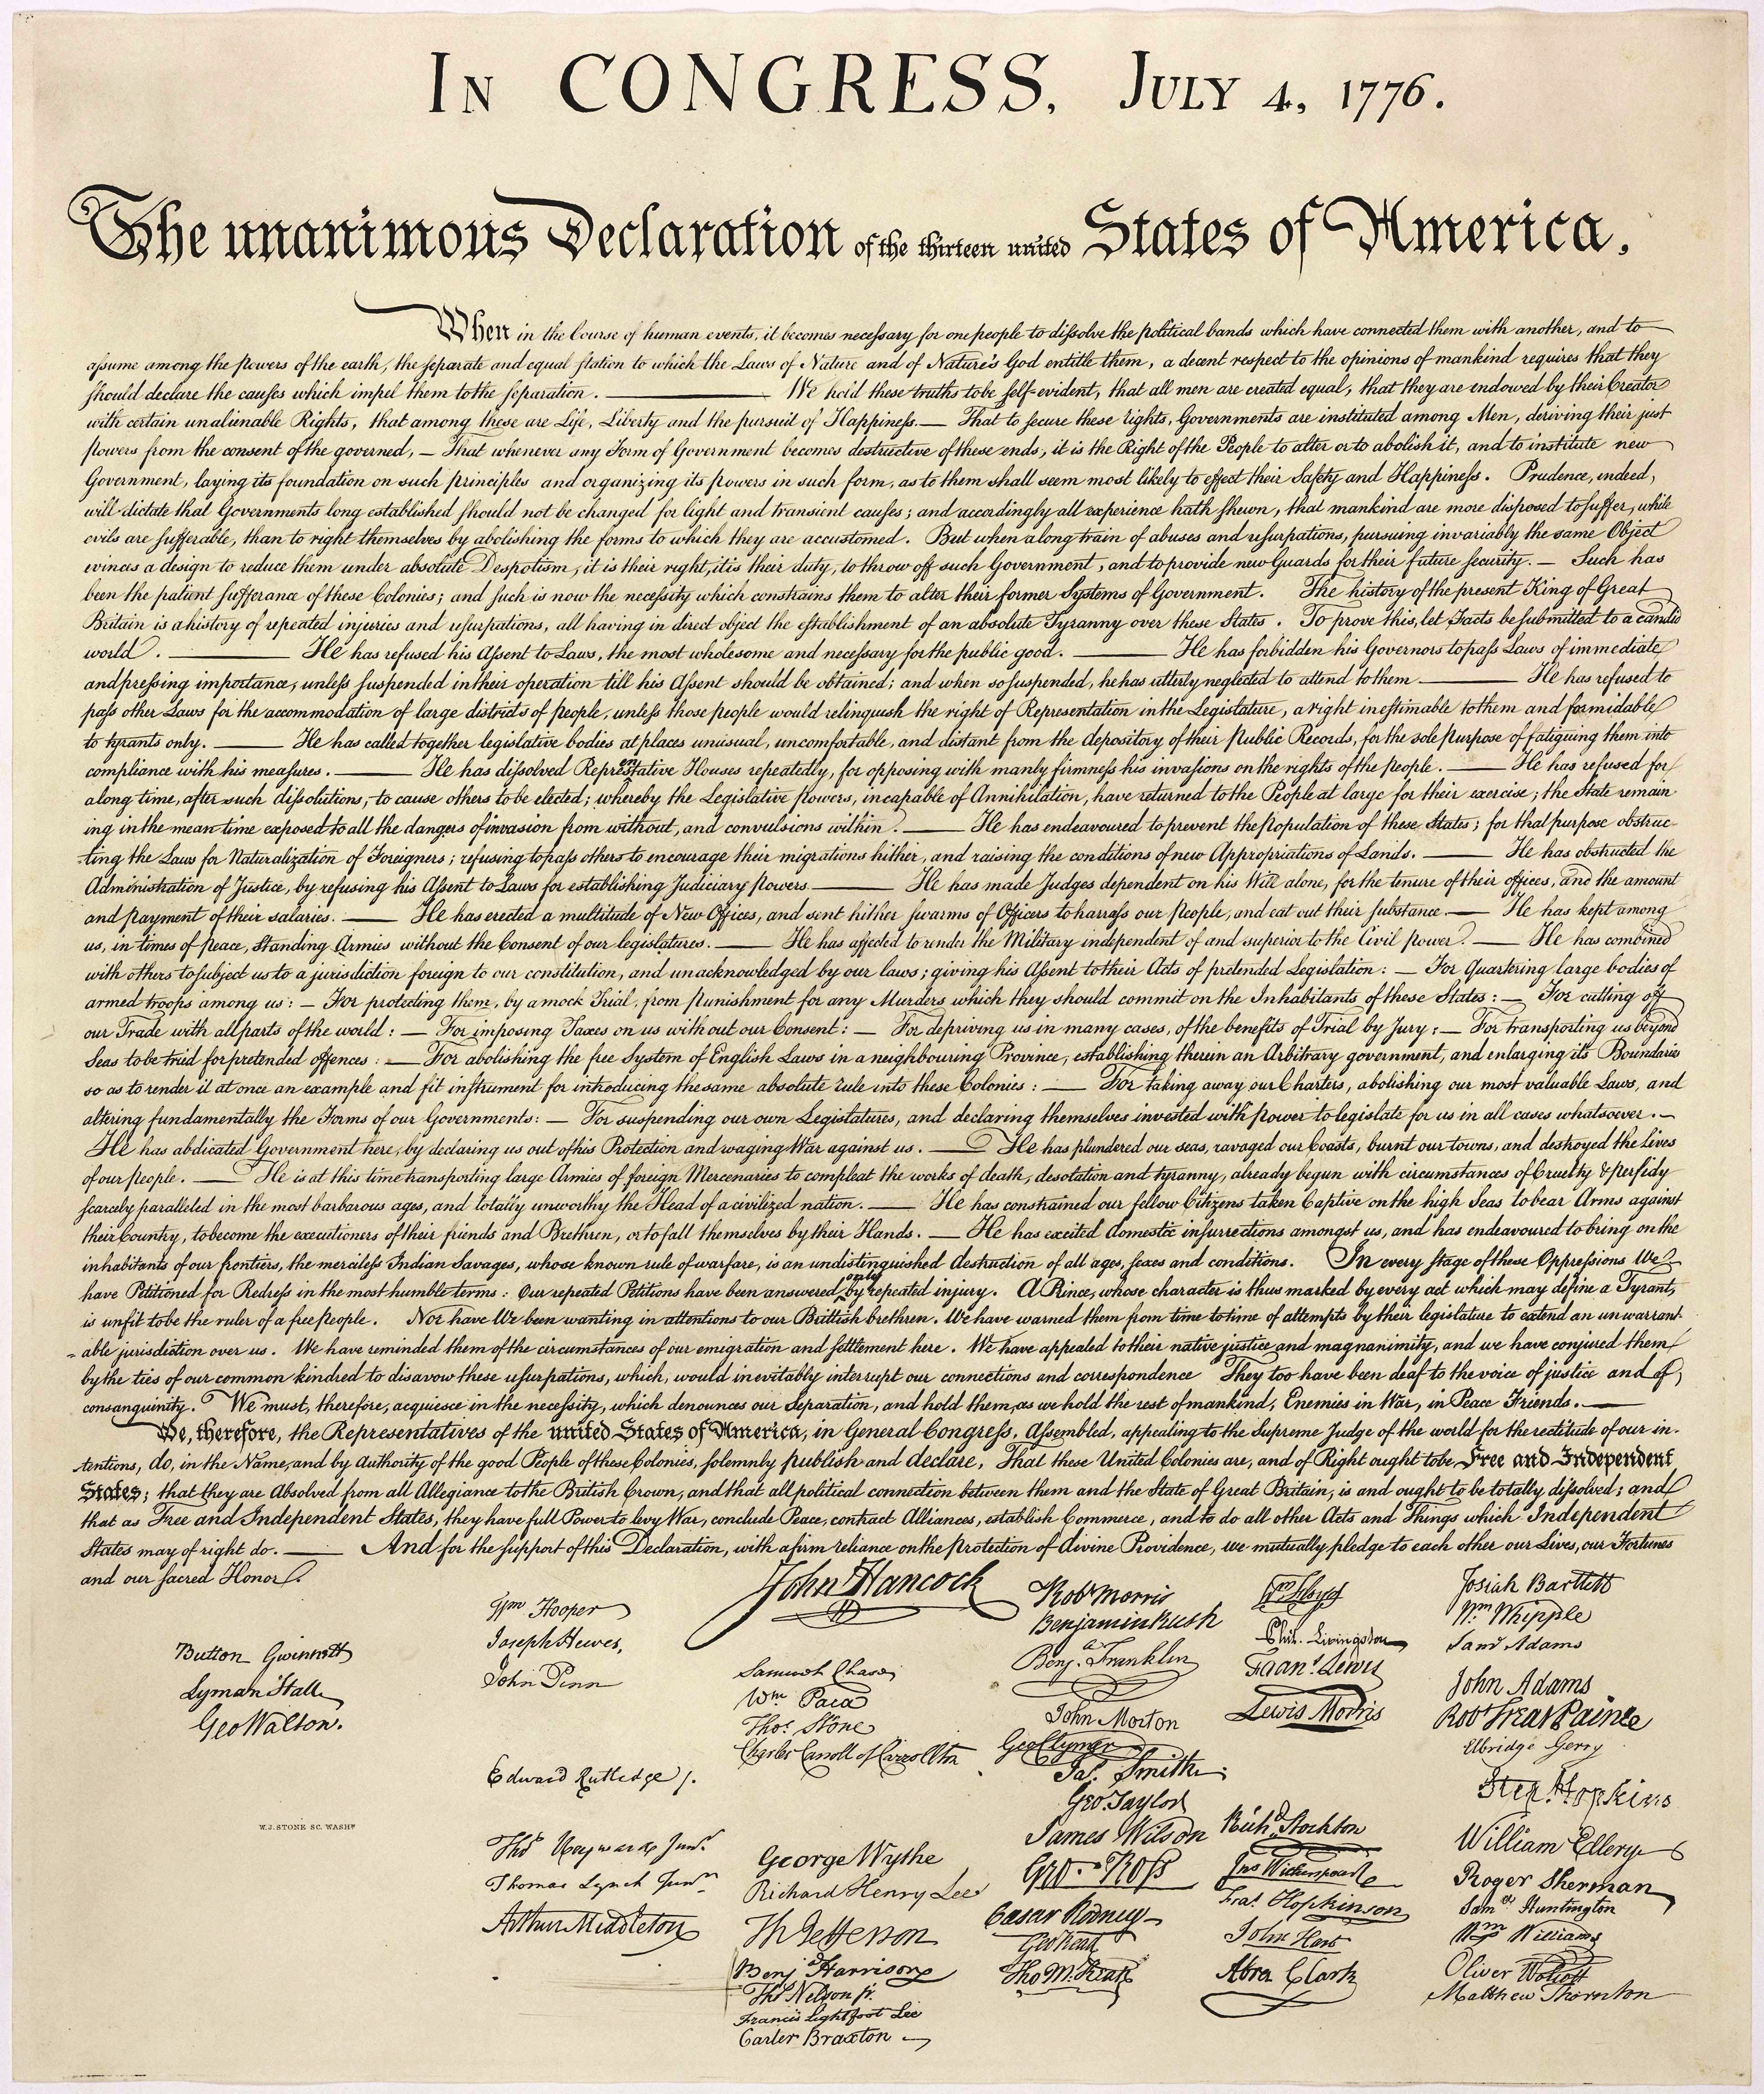 https://www.monticello.org/sites/default/files/uploaded-content-images/Declaration_Engrav_Pg1of1_doctored_0.jpg